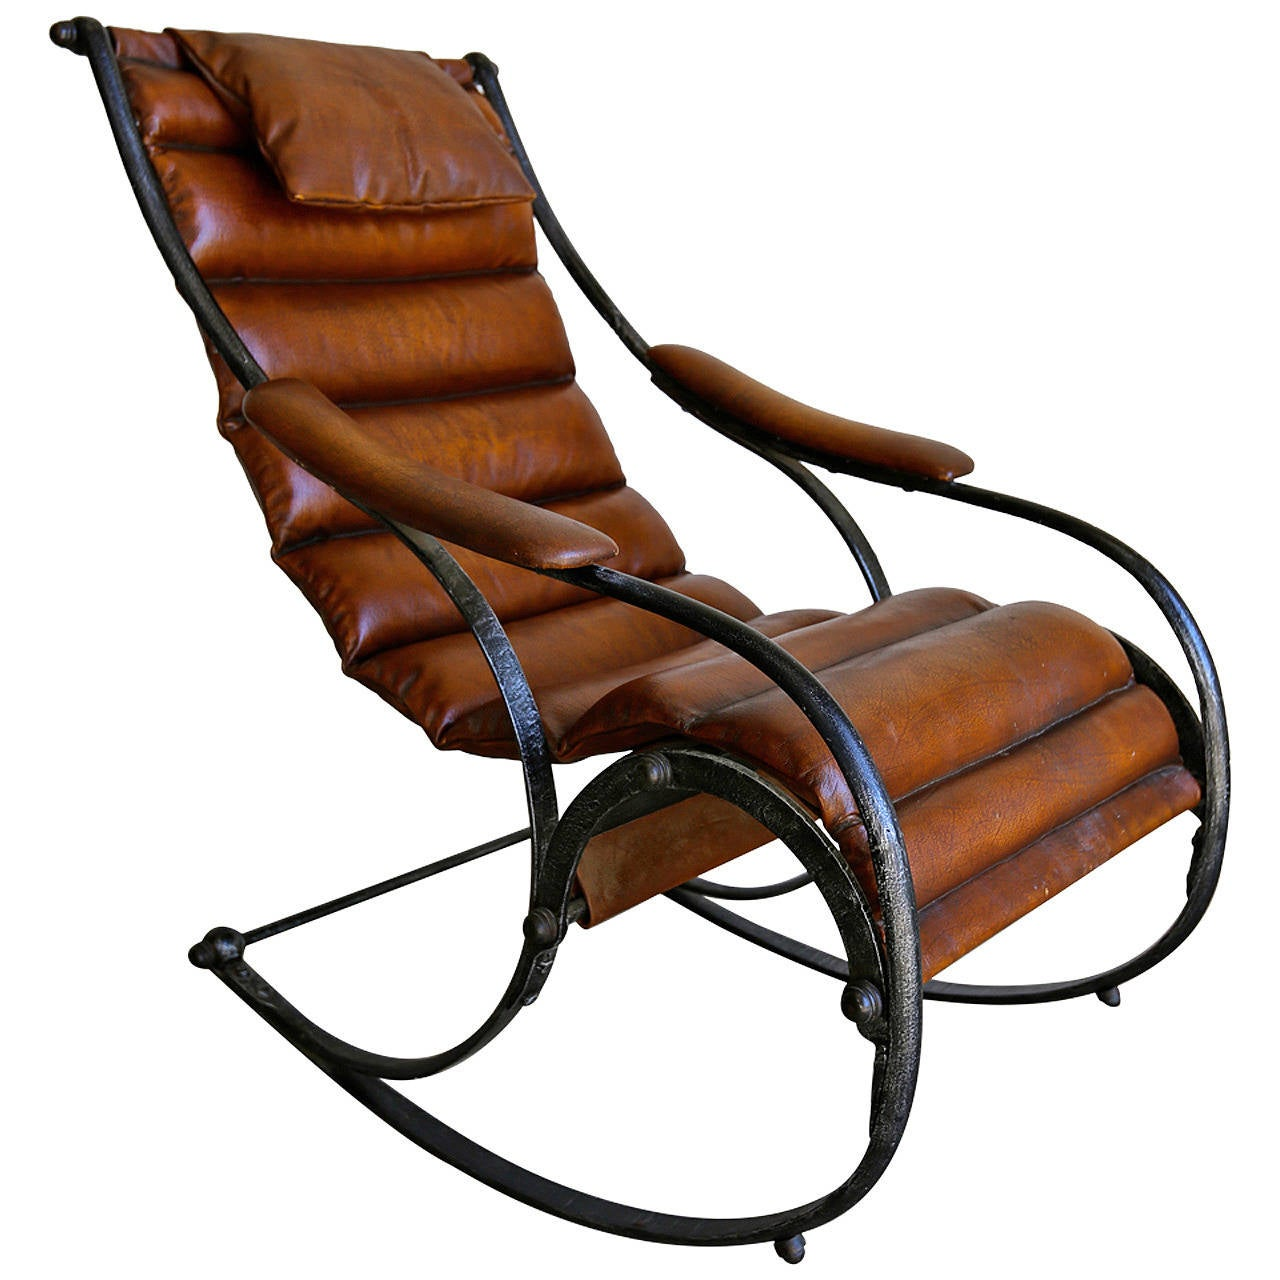 Metal And Leather Chair Sculptural Leather And Steel Rocking Chair At 1stdibs